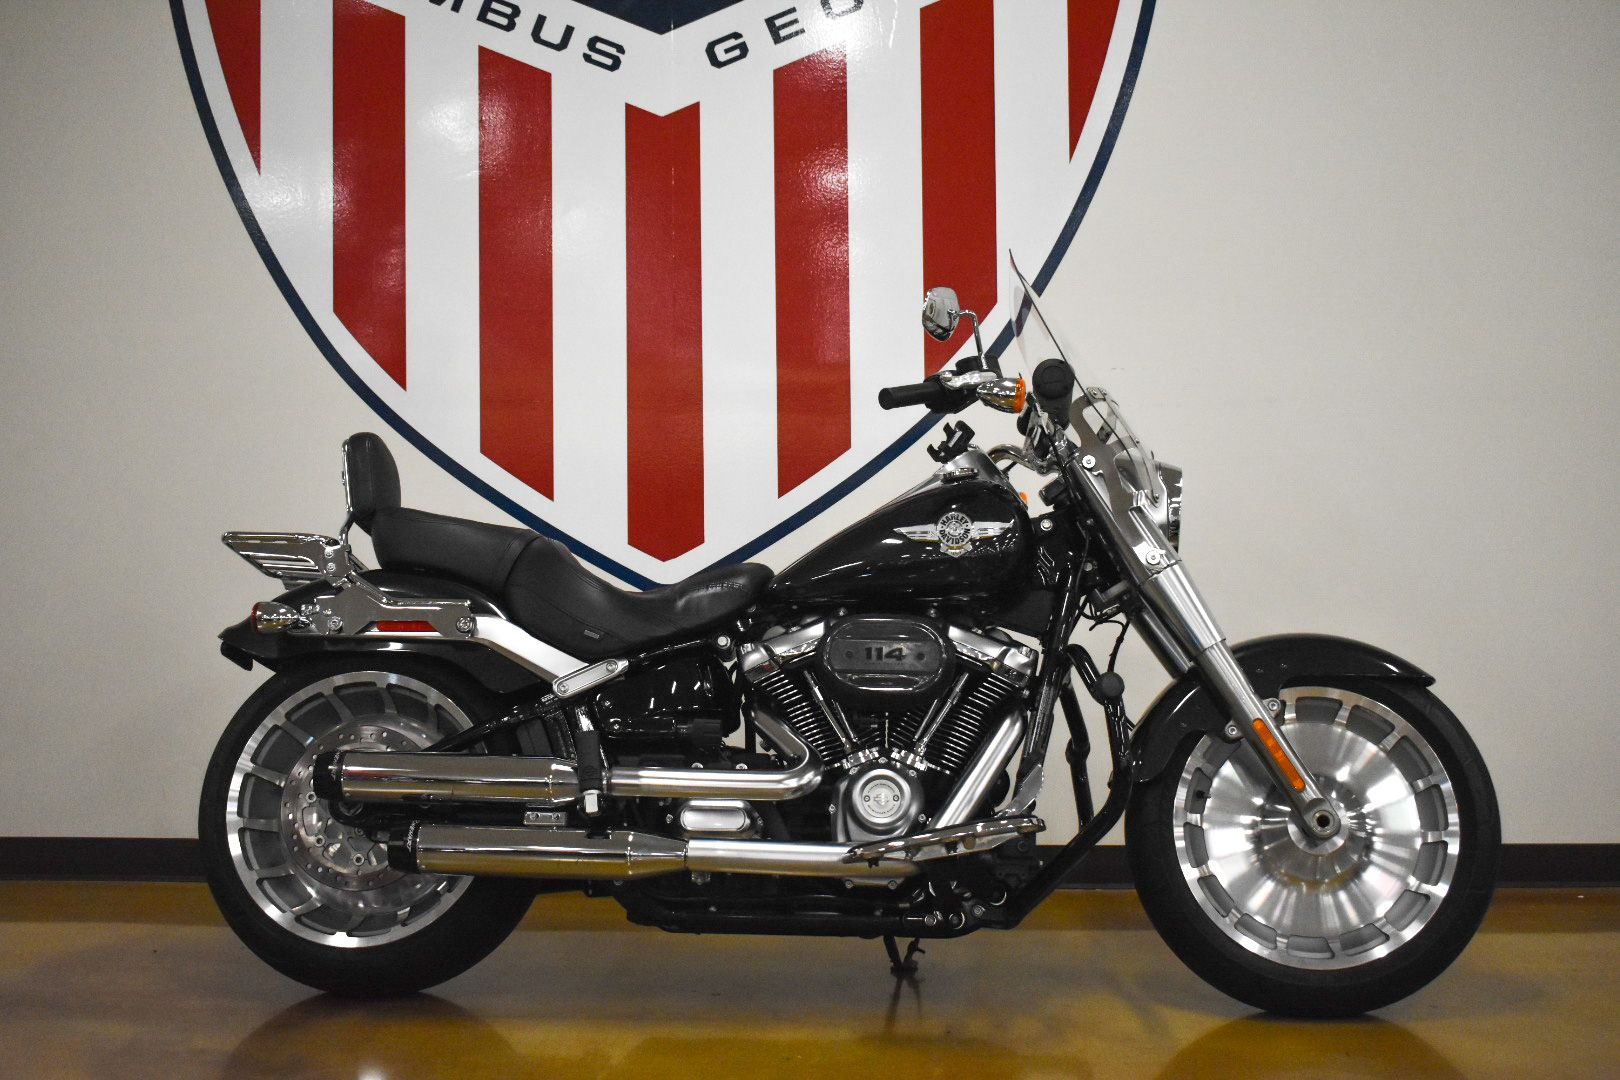 Pre-Owned 2018 Harley-Davidson Fat Boy 114 FLFBS